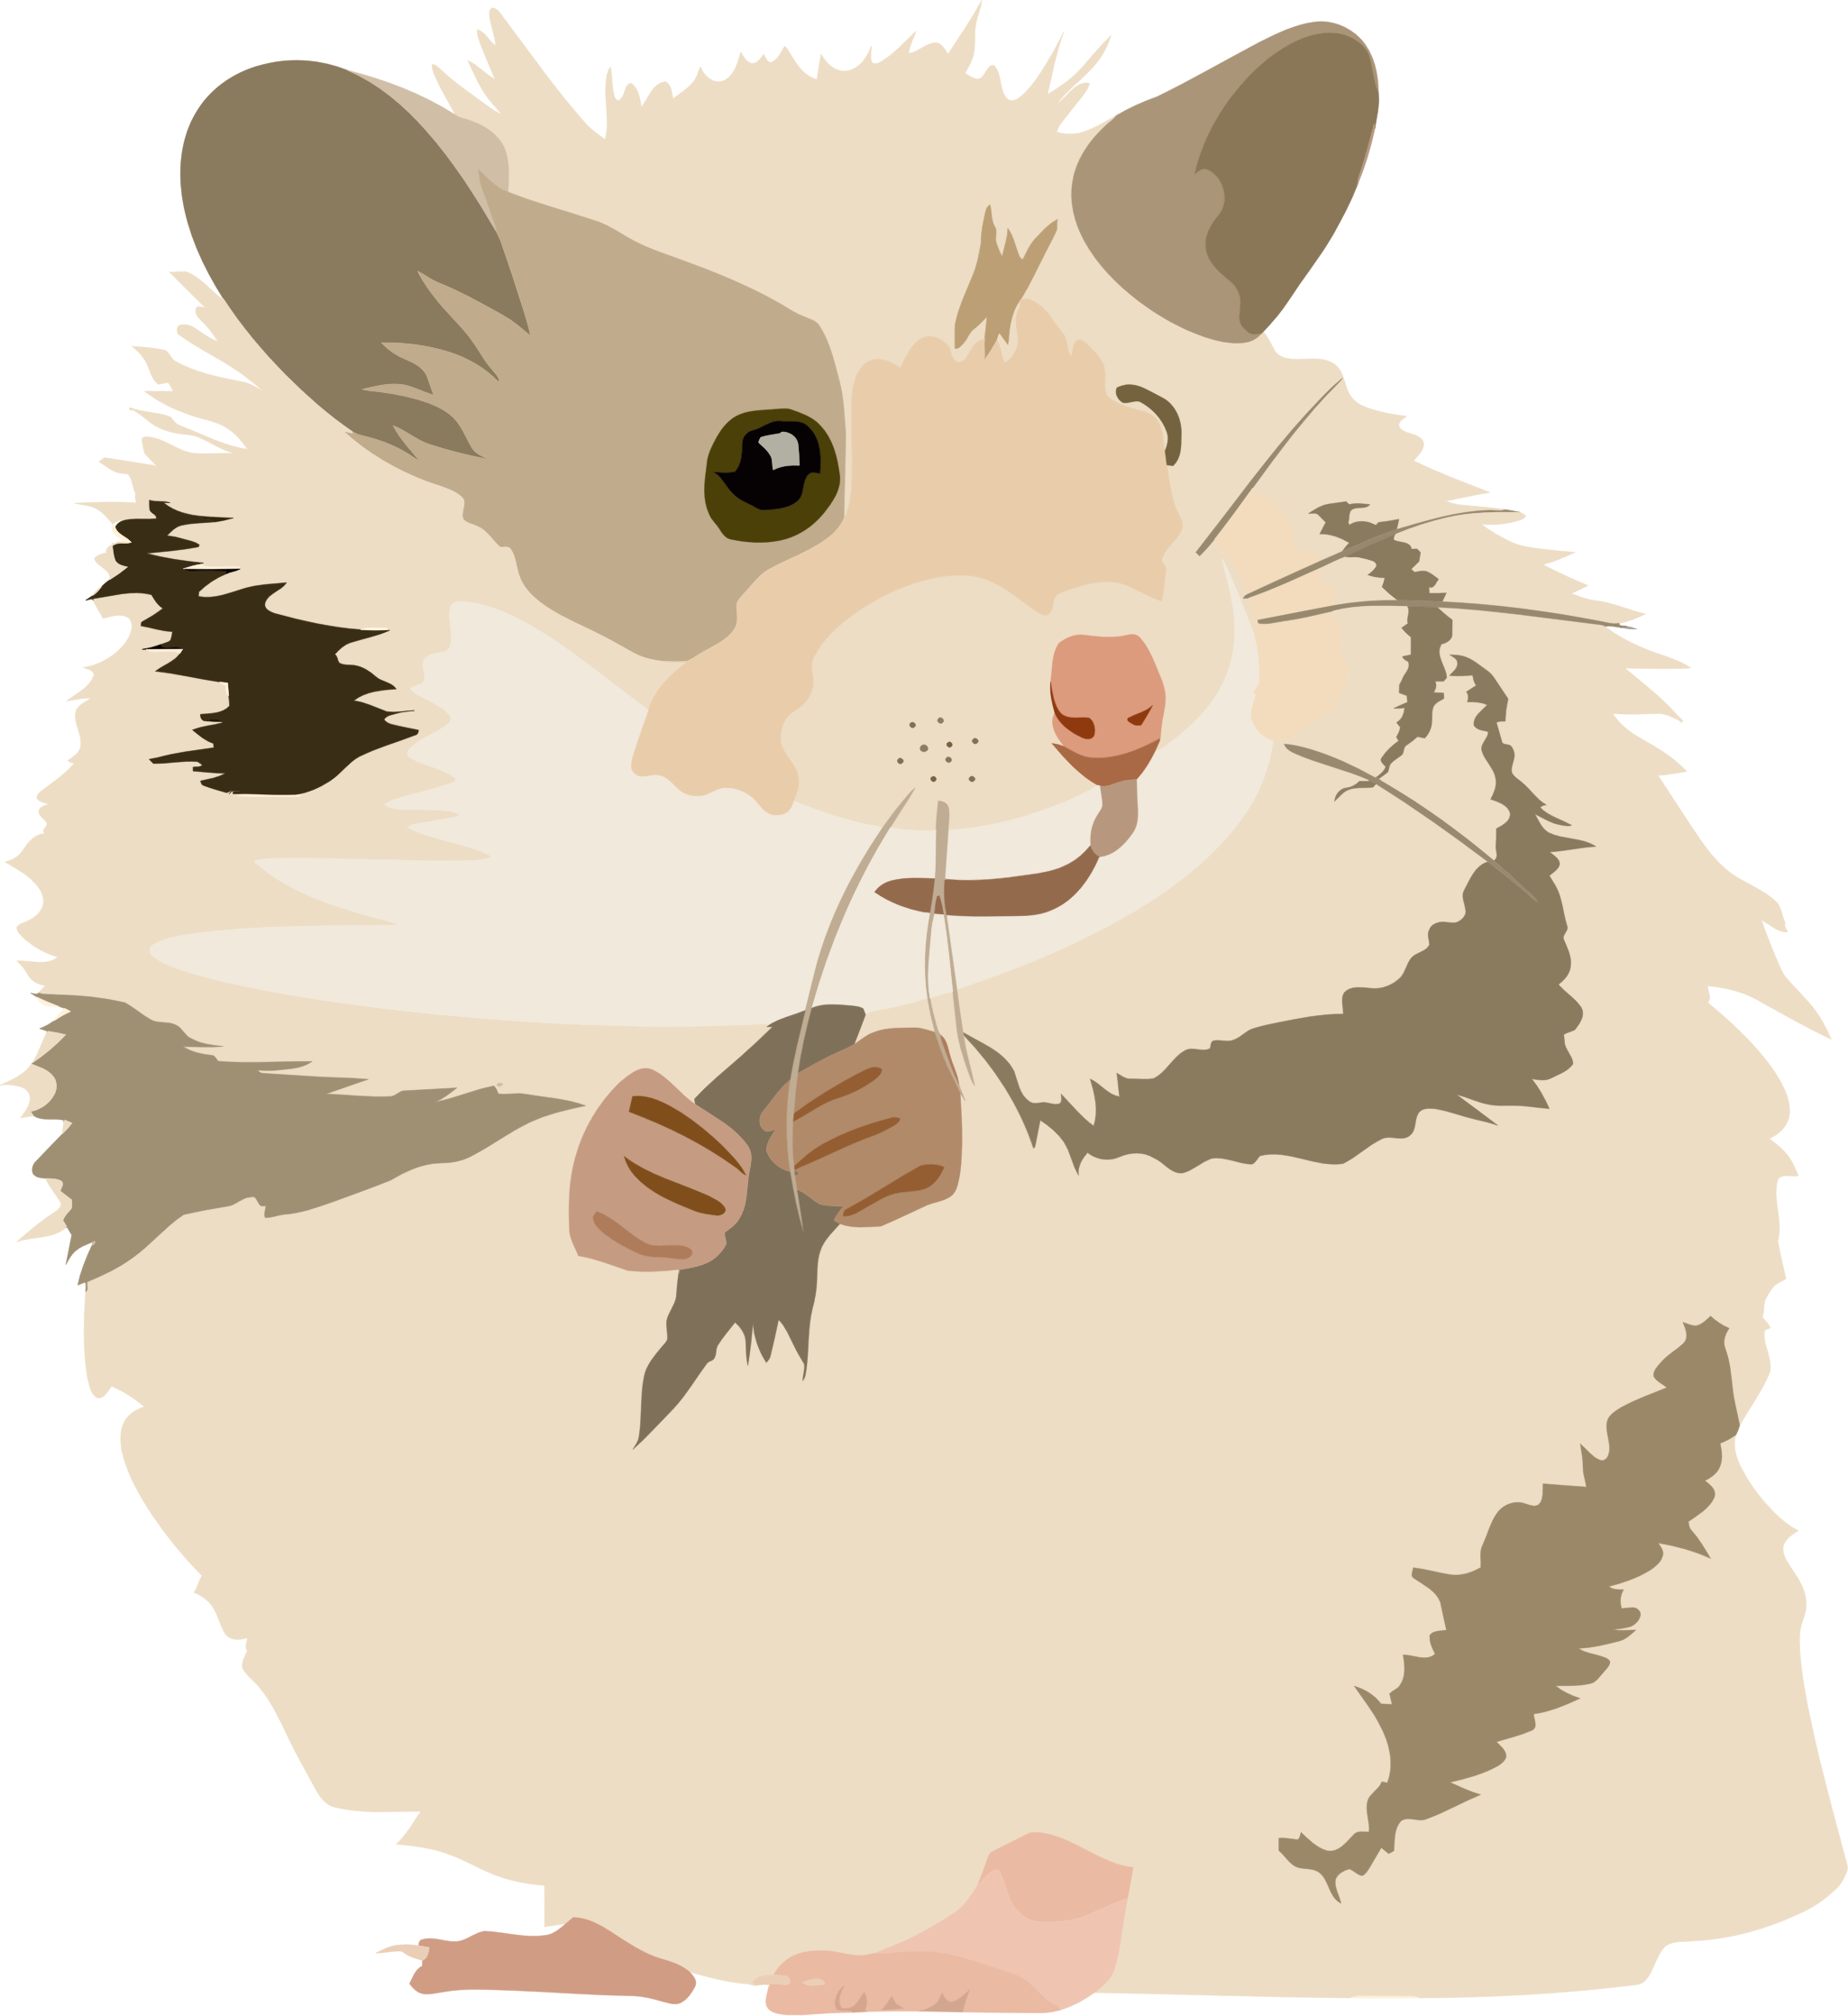 clipart freeuse Panda free images hamsterclipart. Hamster clipart